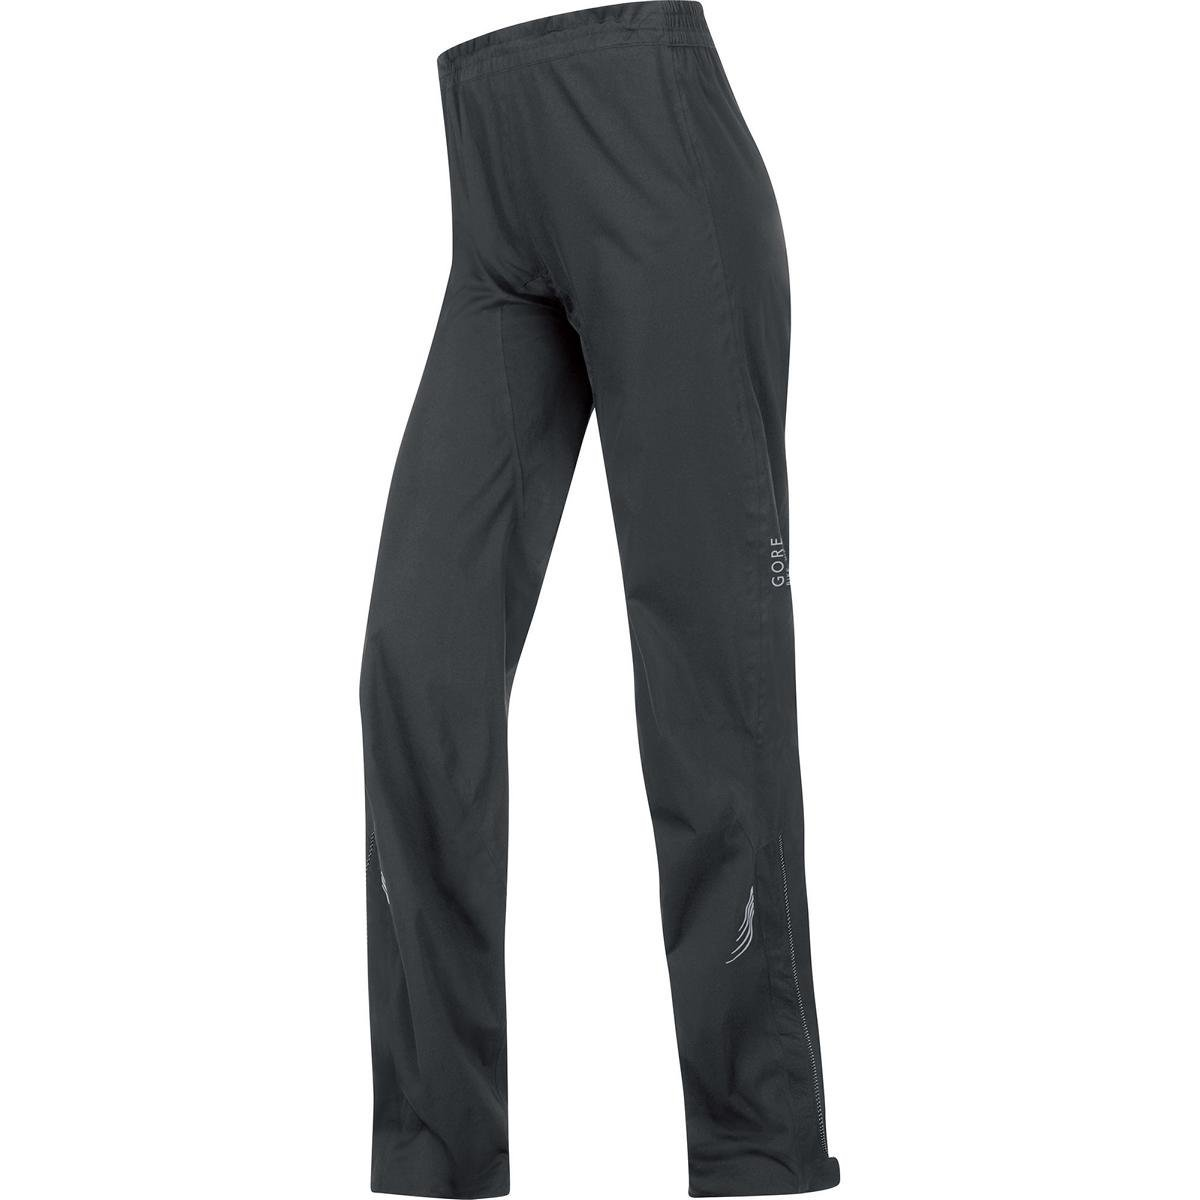 GORE BIKE WEAR Women's Long Rain Cycling Overtrousers, Super-Light, GORE-TEX Active,  LADY GT AS Pants, Size XS, Black, PGDLEL